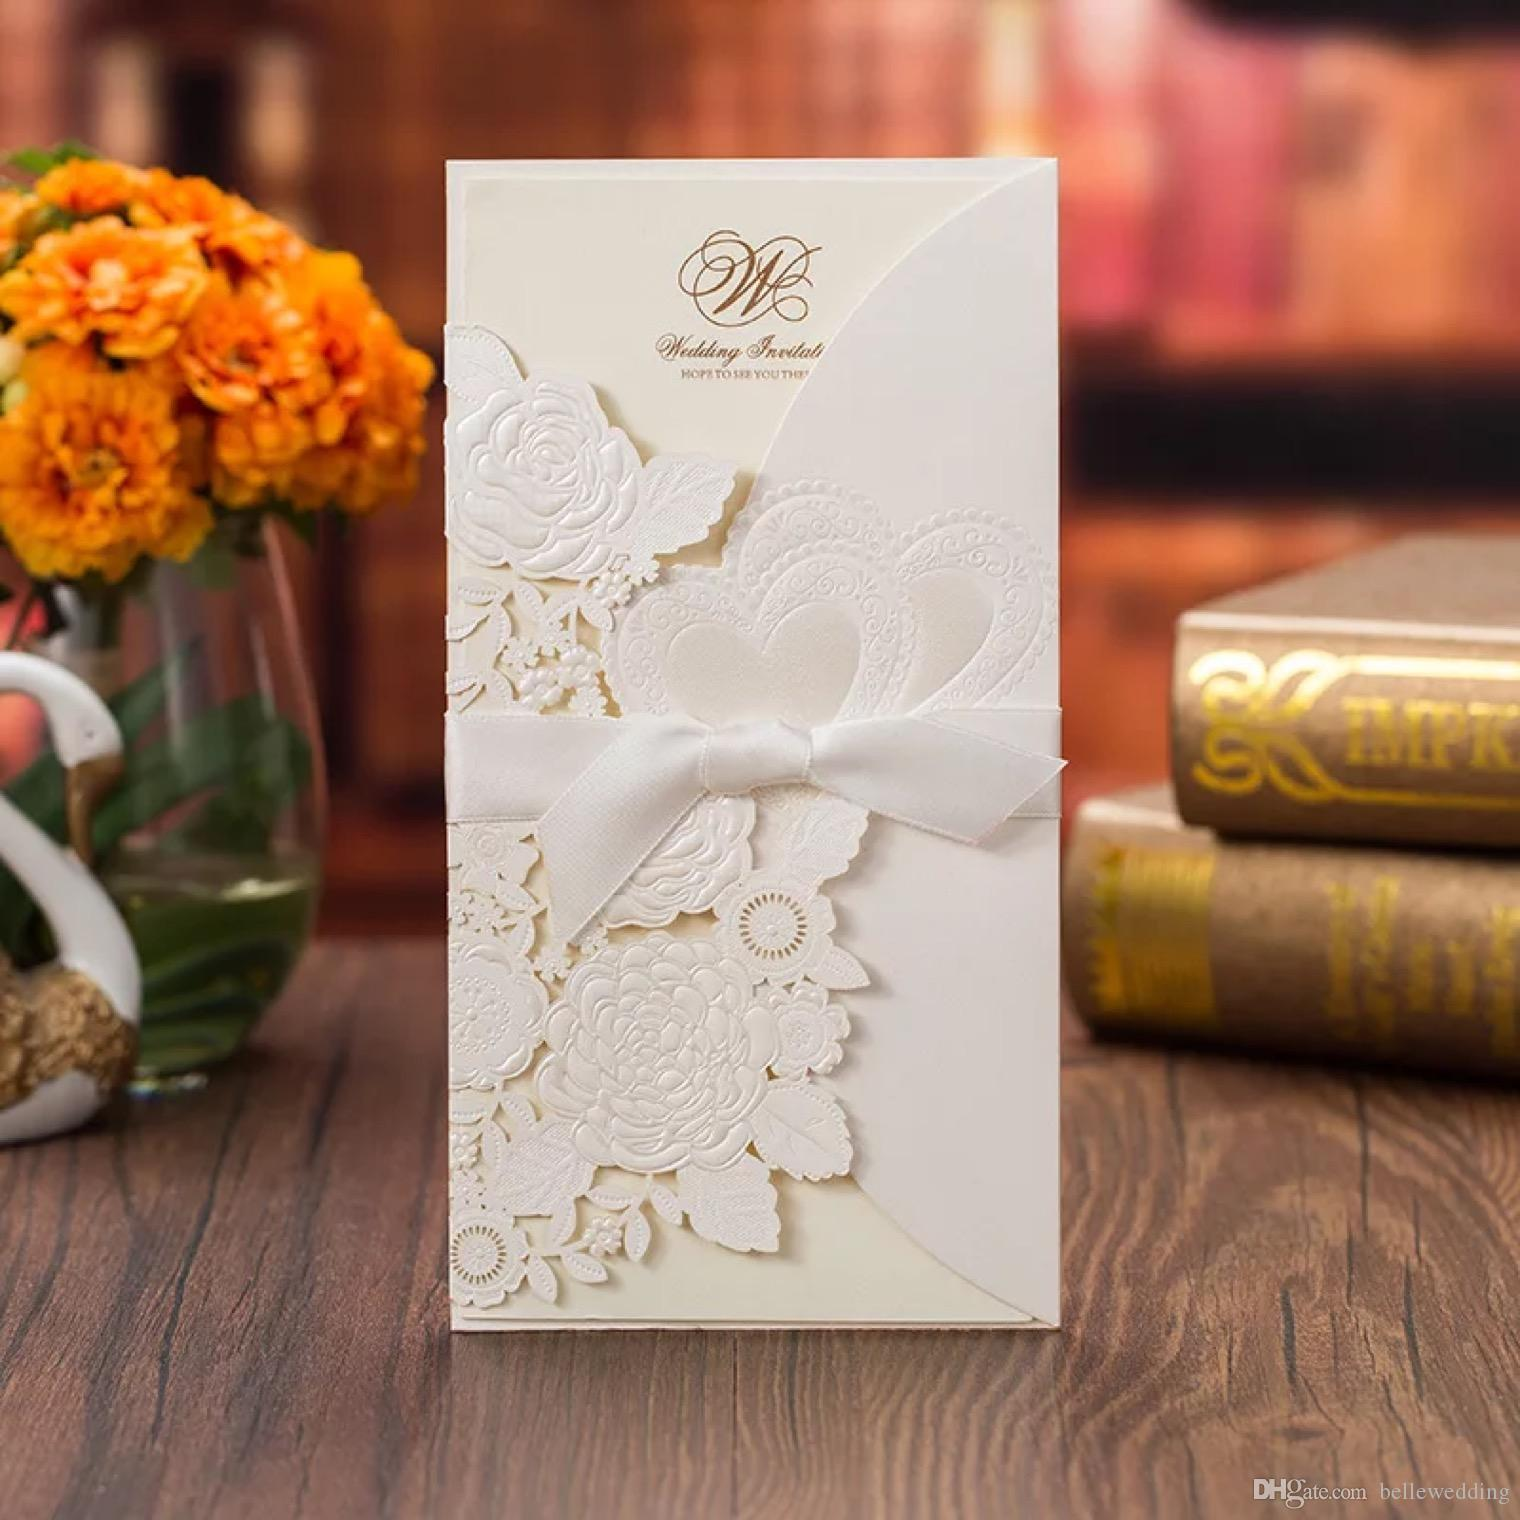 image about Printable Labels for Wedding Invitations called Laser Minimize Wedding ceremony Invites Cost-free Printing Invitation Playing cards With Gilding Bouquets Hearts Custom-made Wedding day Invites BW-I0044W